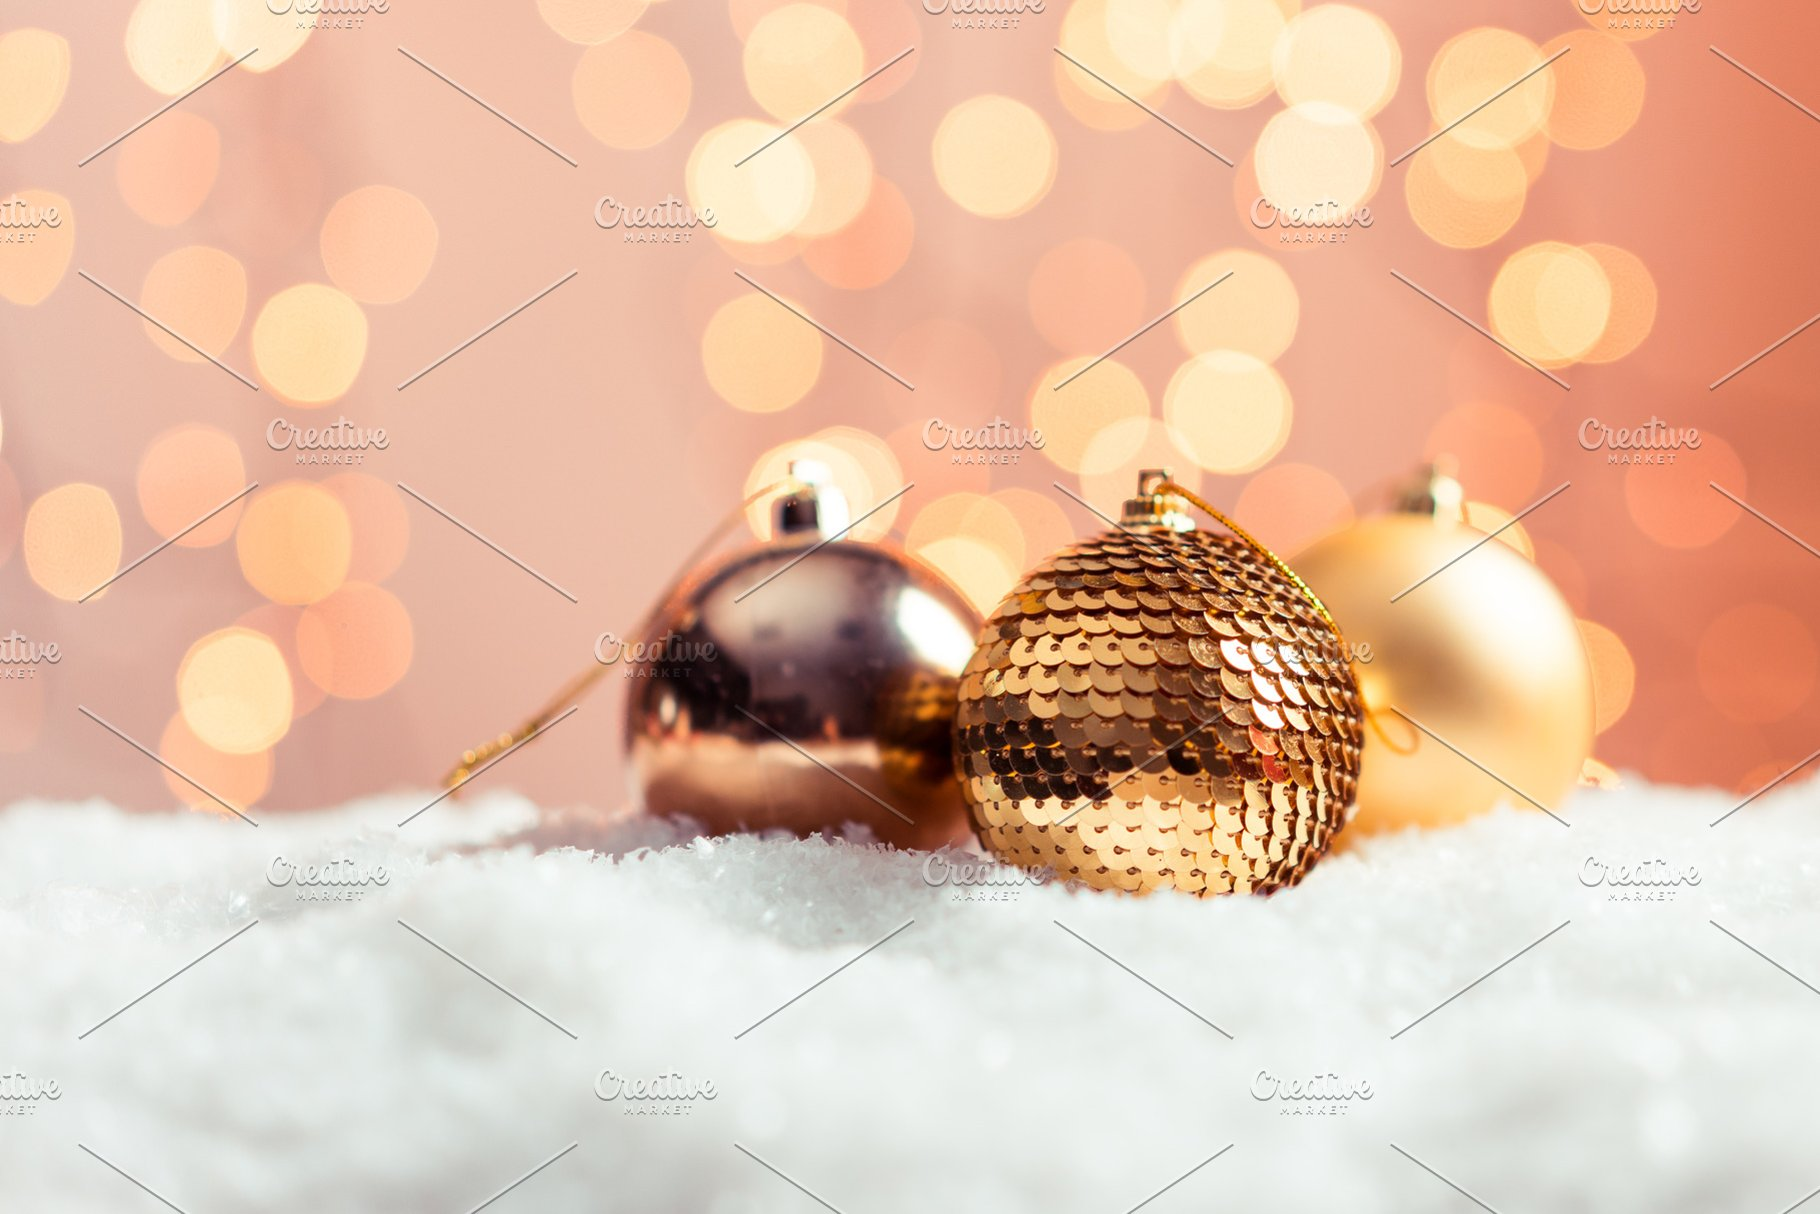 Beautiful Christmas Background Images.Christmas Background With Gold Balls